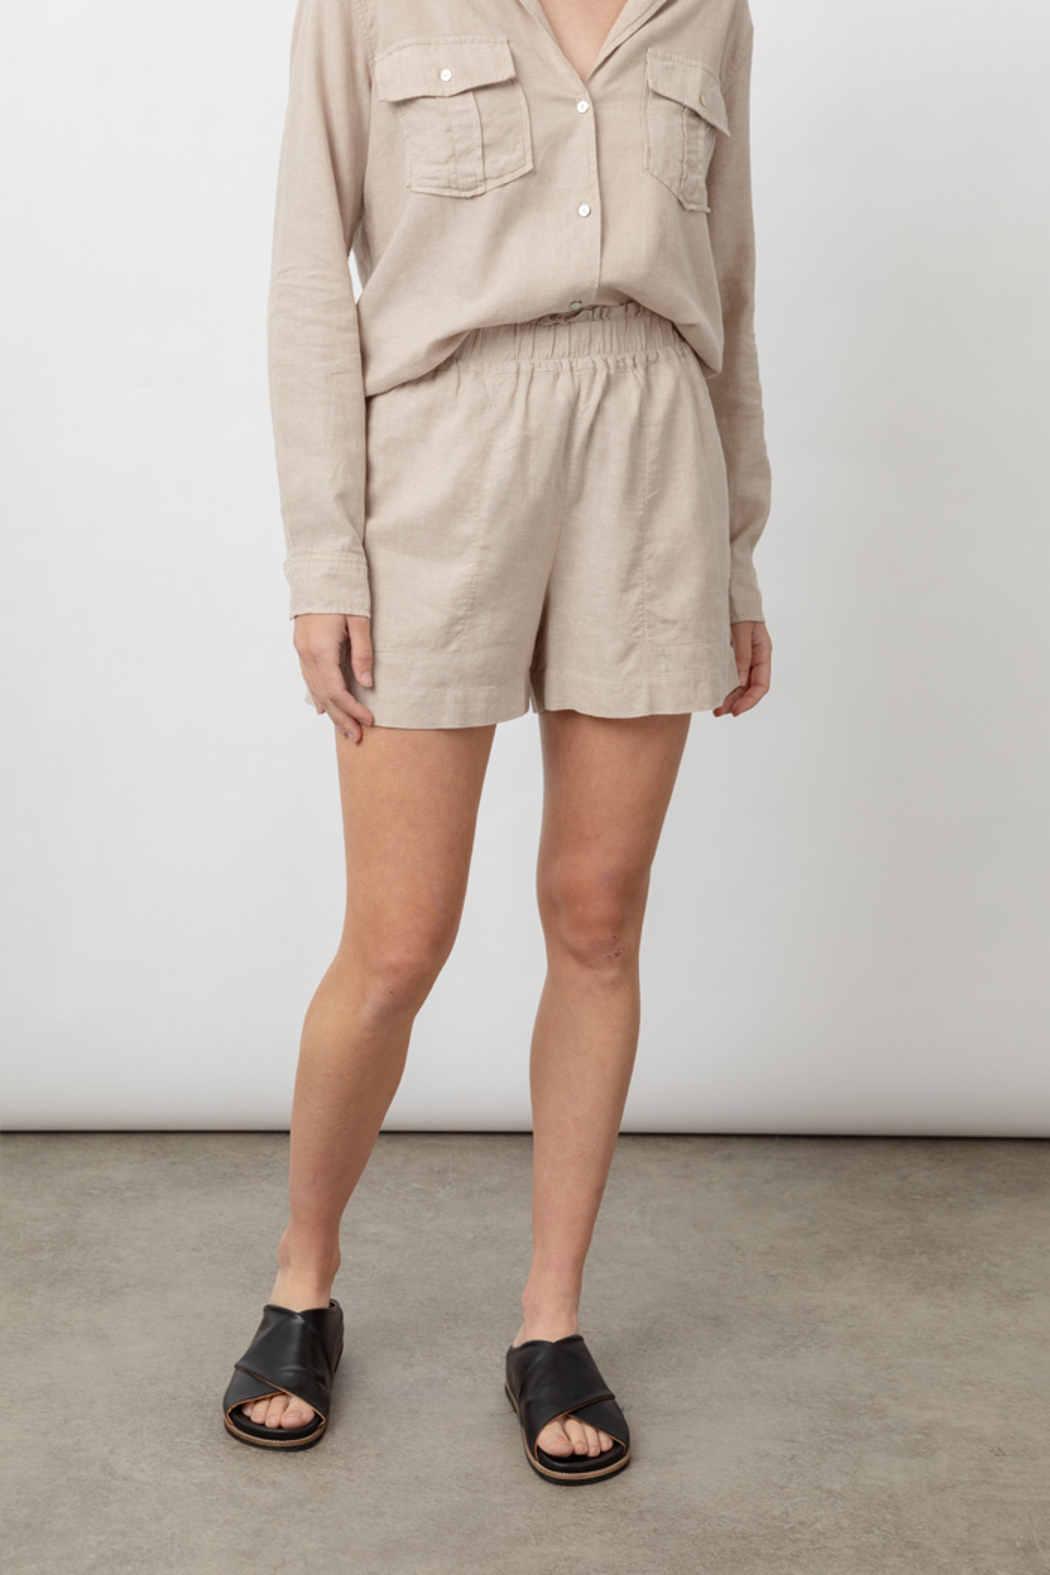 Rails Clothing LEIGHTON LINEN SHORT - Back Cropped Image